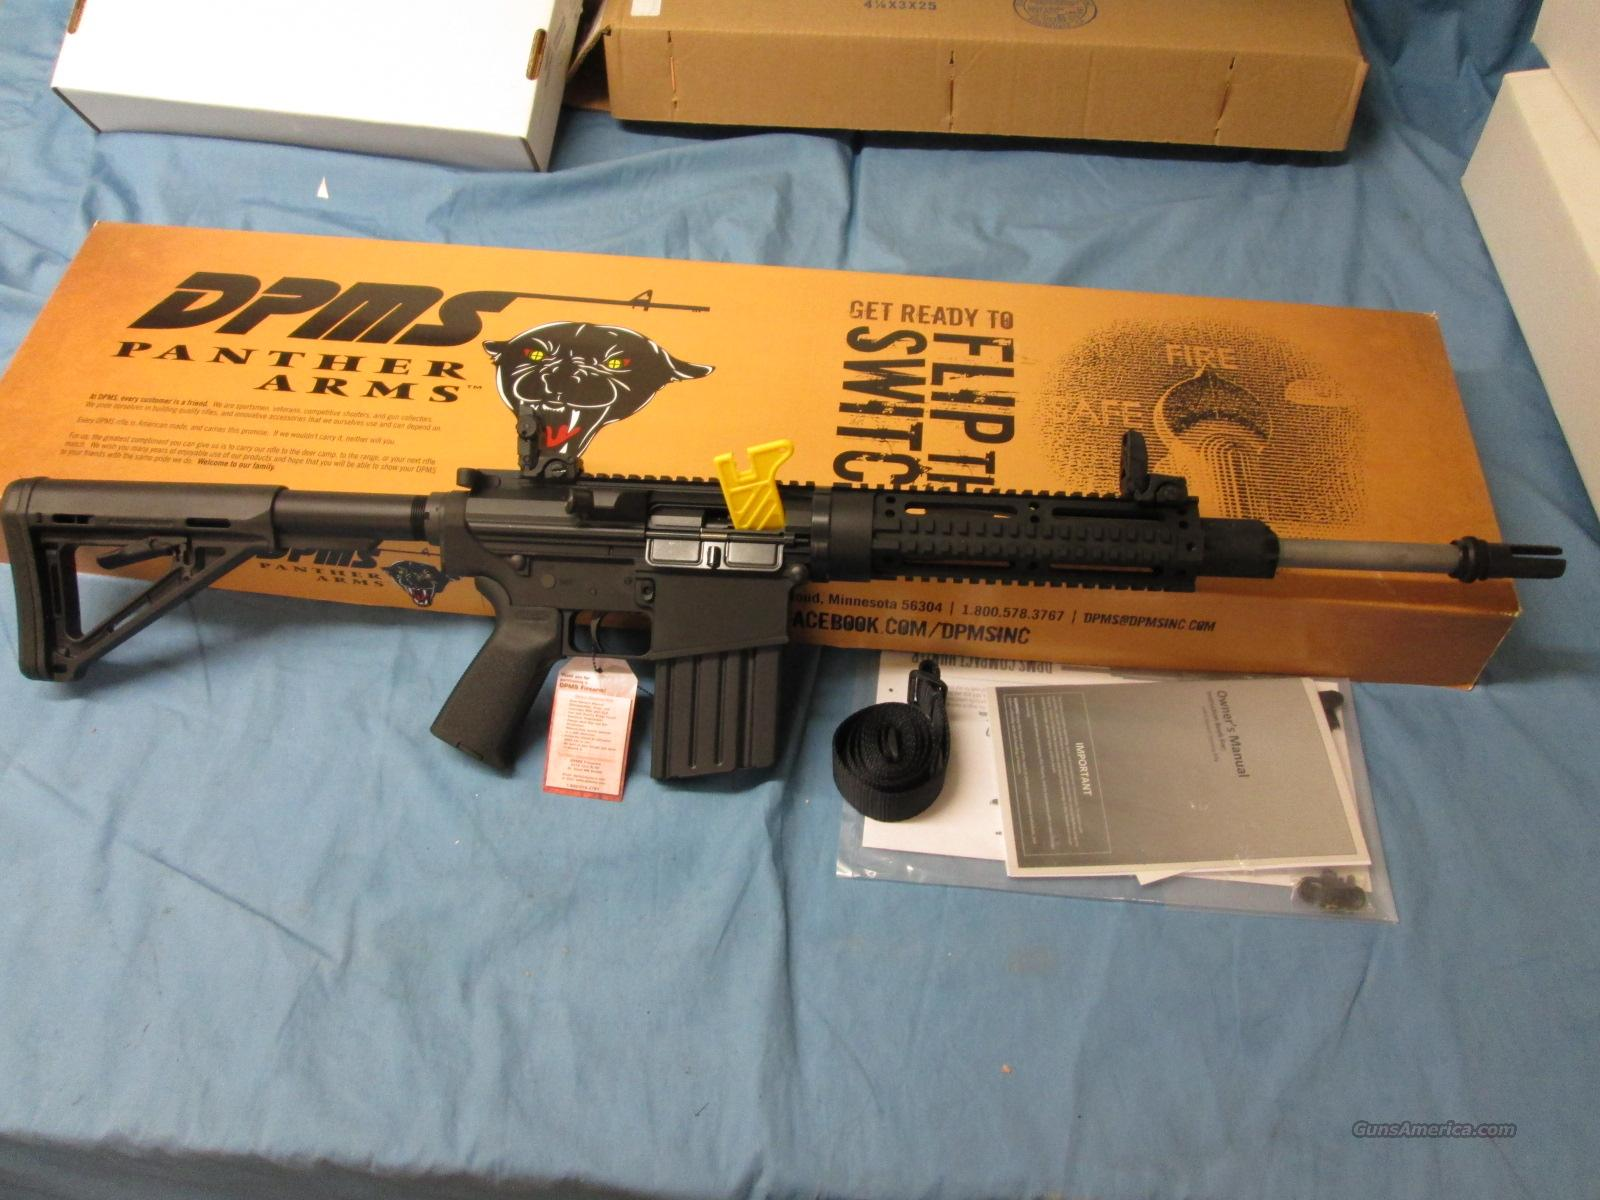 Clearance Sale! DPMS RECON 308 7.62x51 + Extras!  Guns > Rifles > DPMS - Panther Arms > Complete Rifle